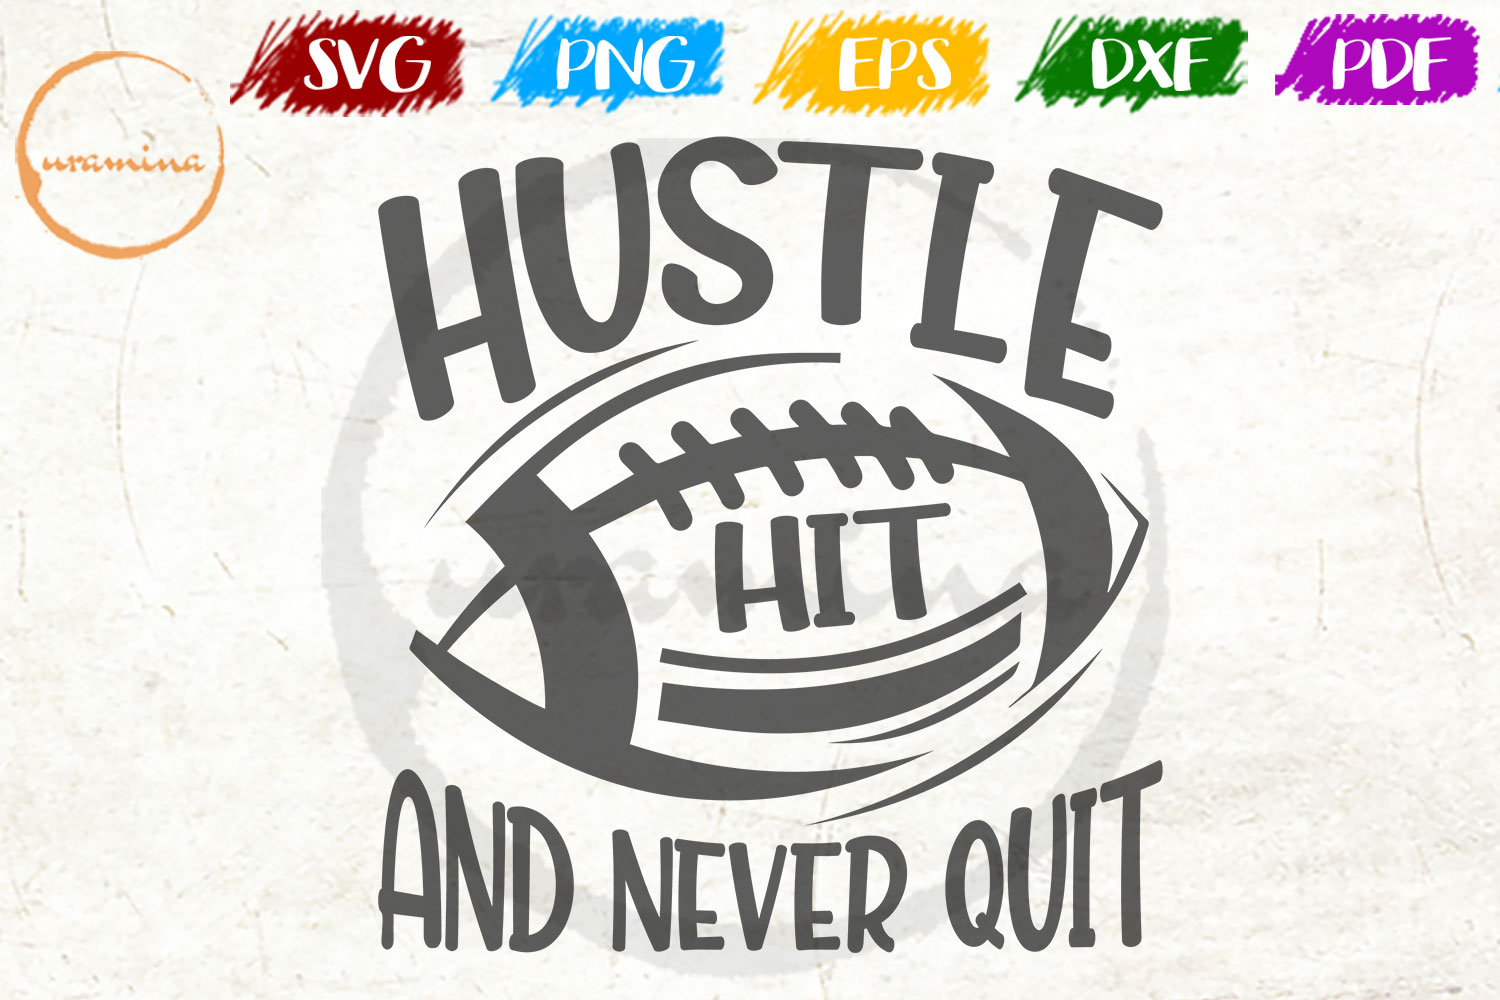 Download Free Hustle Hit And Never Quit Graphic By Uramina Creative Fabrica for Cricut Explore, Silhouette and other cutting machines.